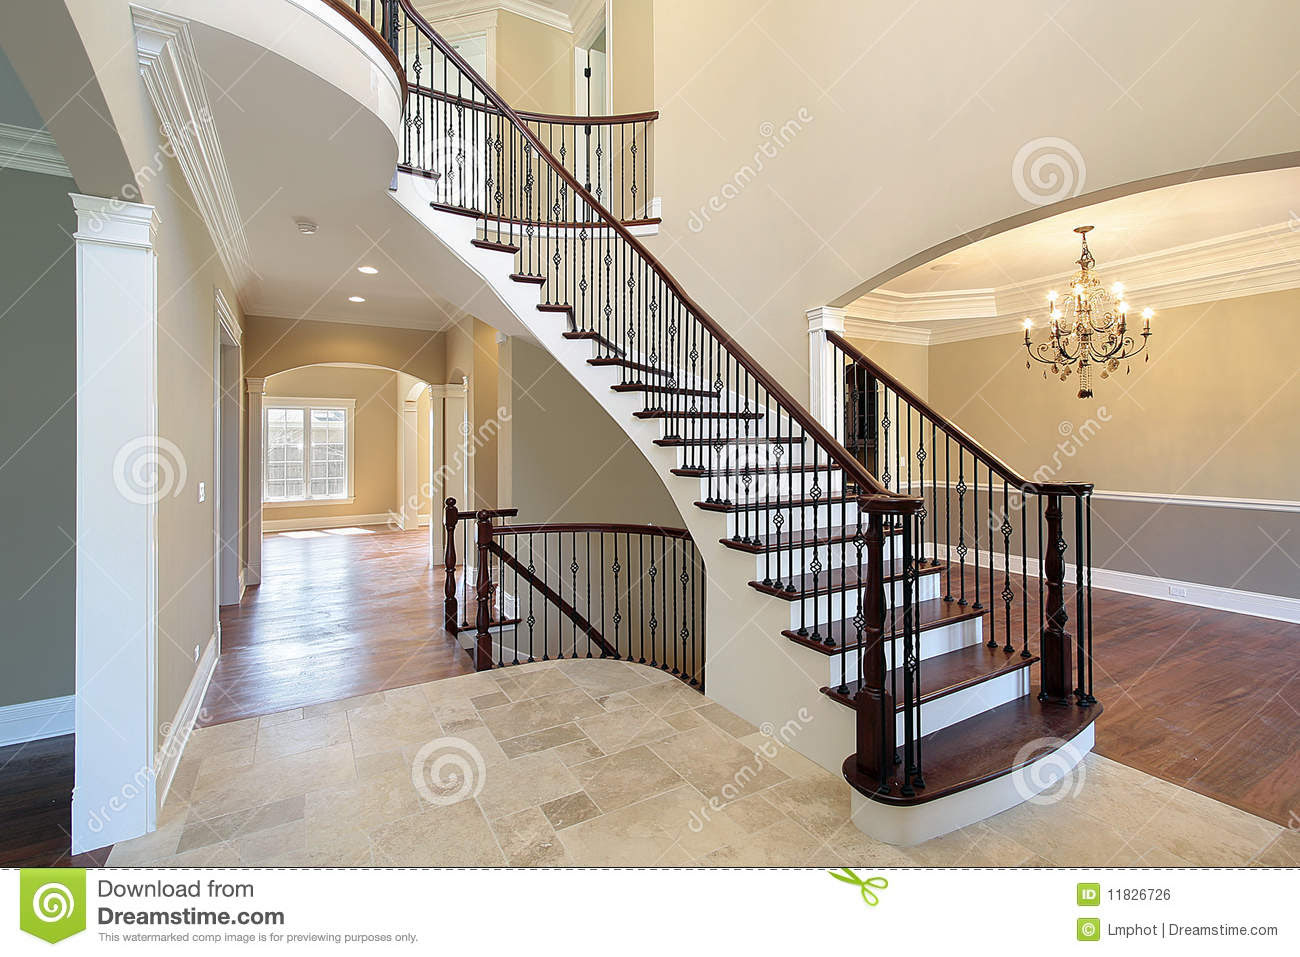 Foyer With Spiral Staircase Royalty Free Stock Image - Image: 11826726